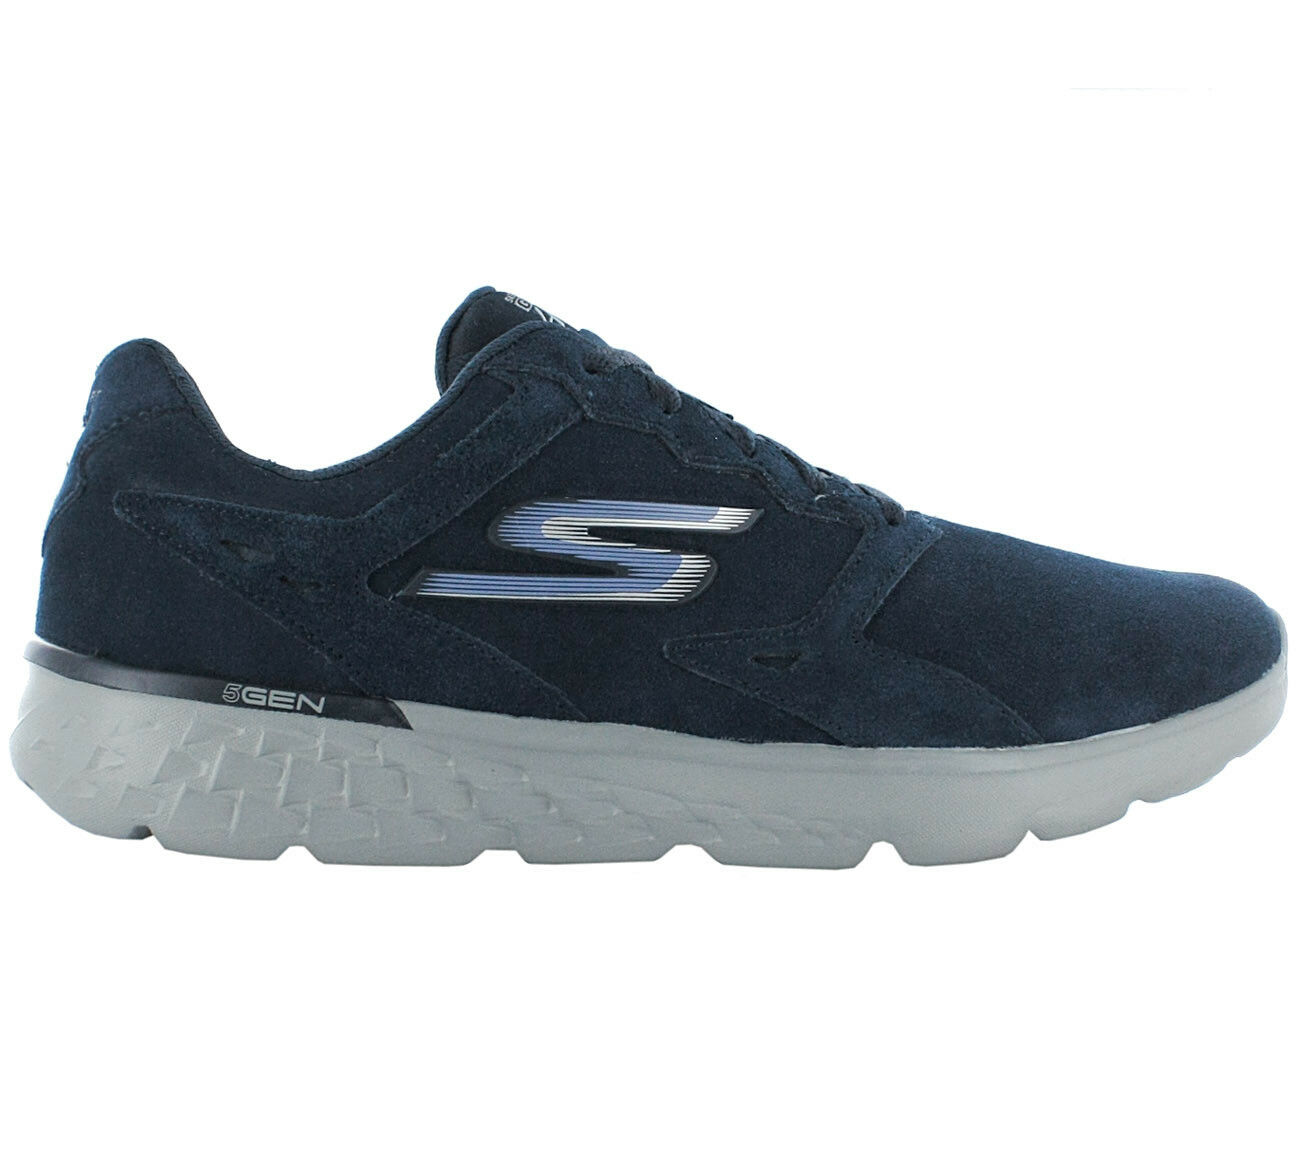 Skechers Performance GoRun 400 Swift Herren Schuhe Sneaker Sport Fitness Go Run